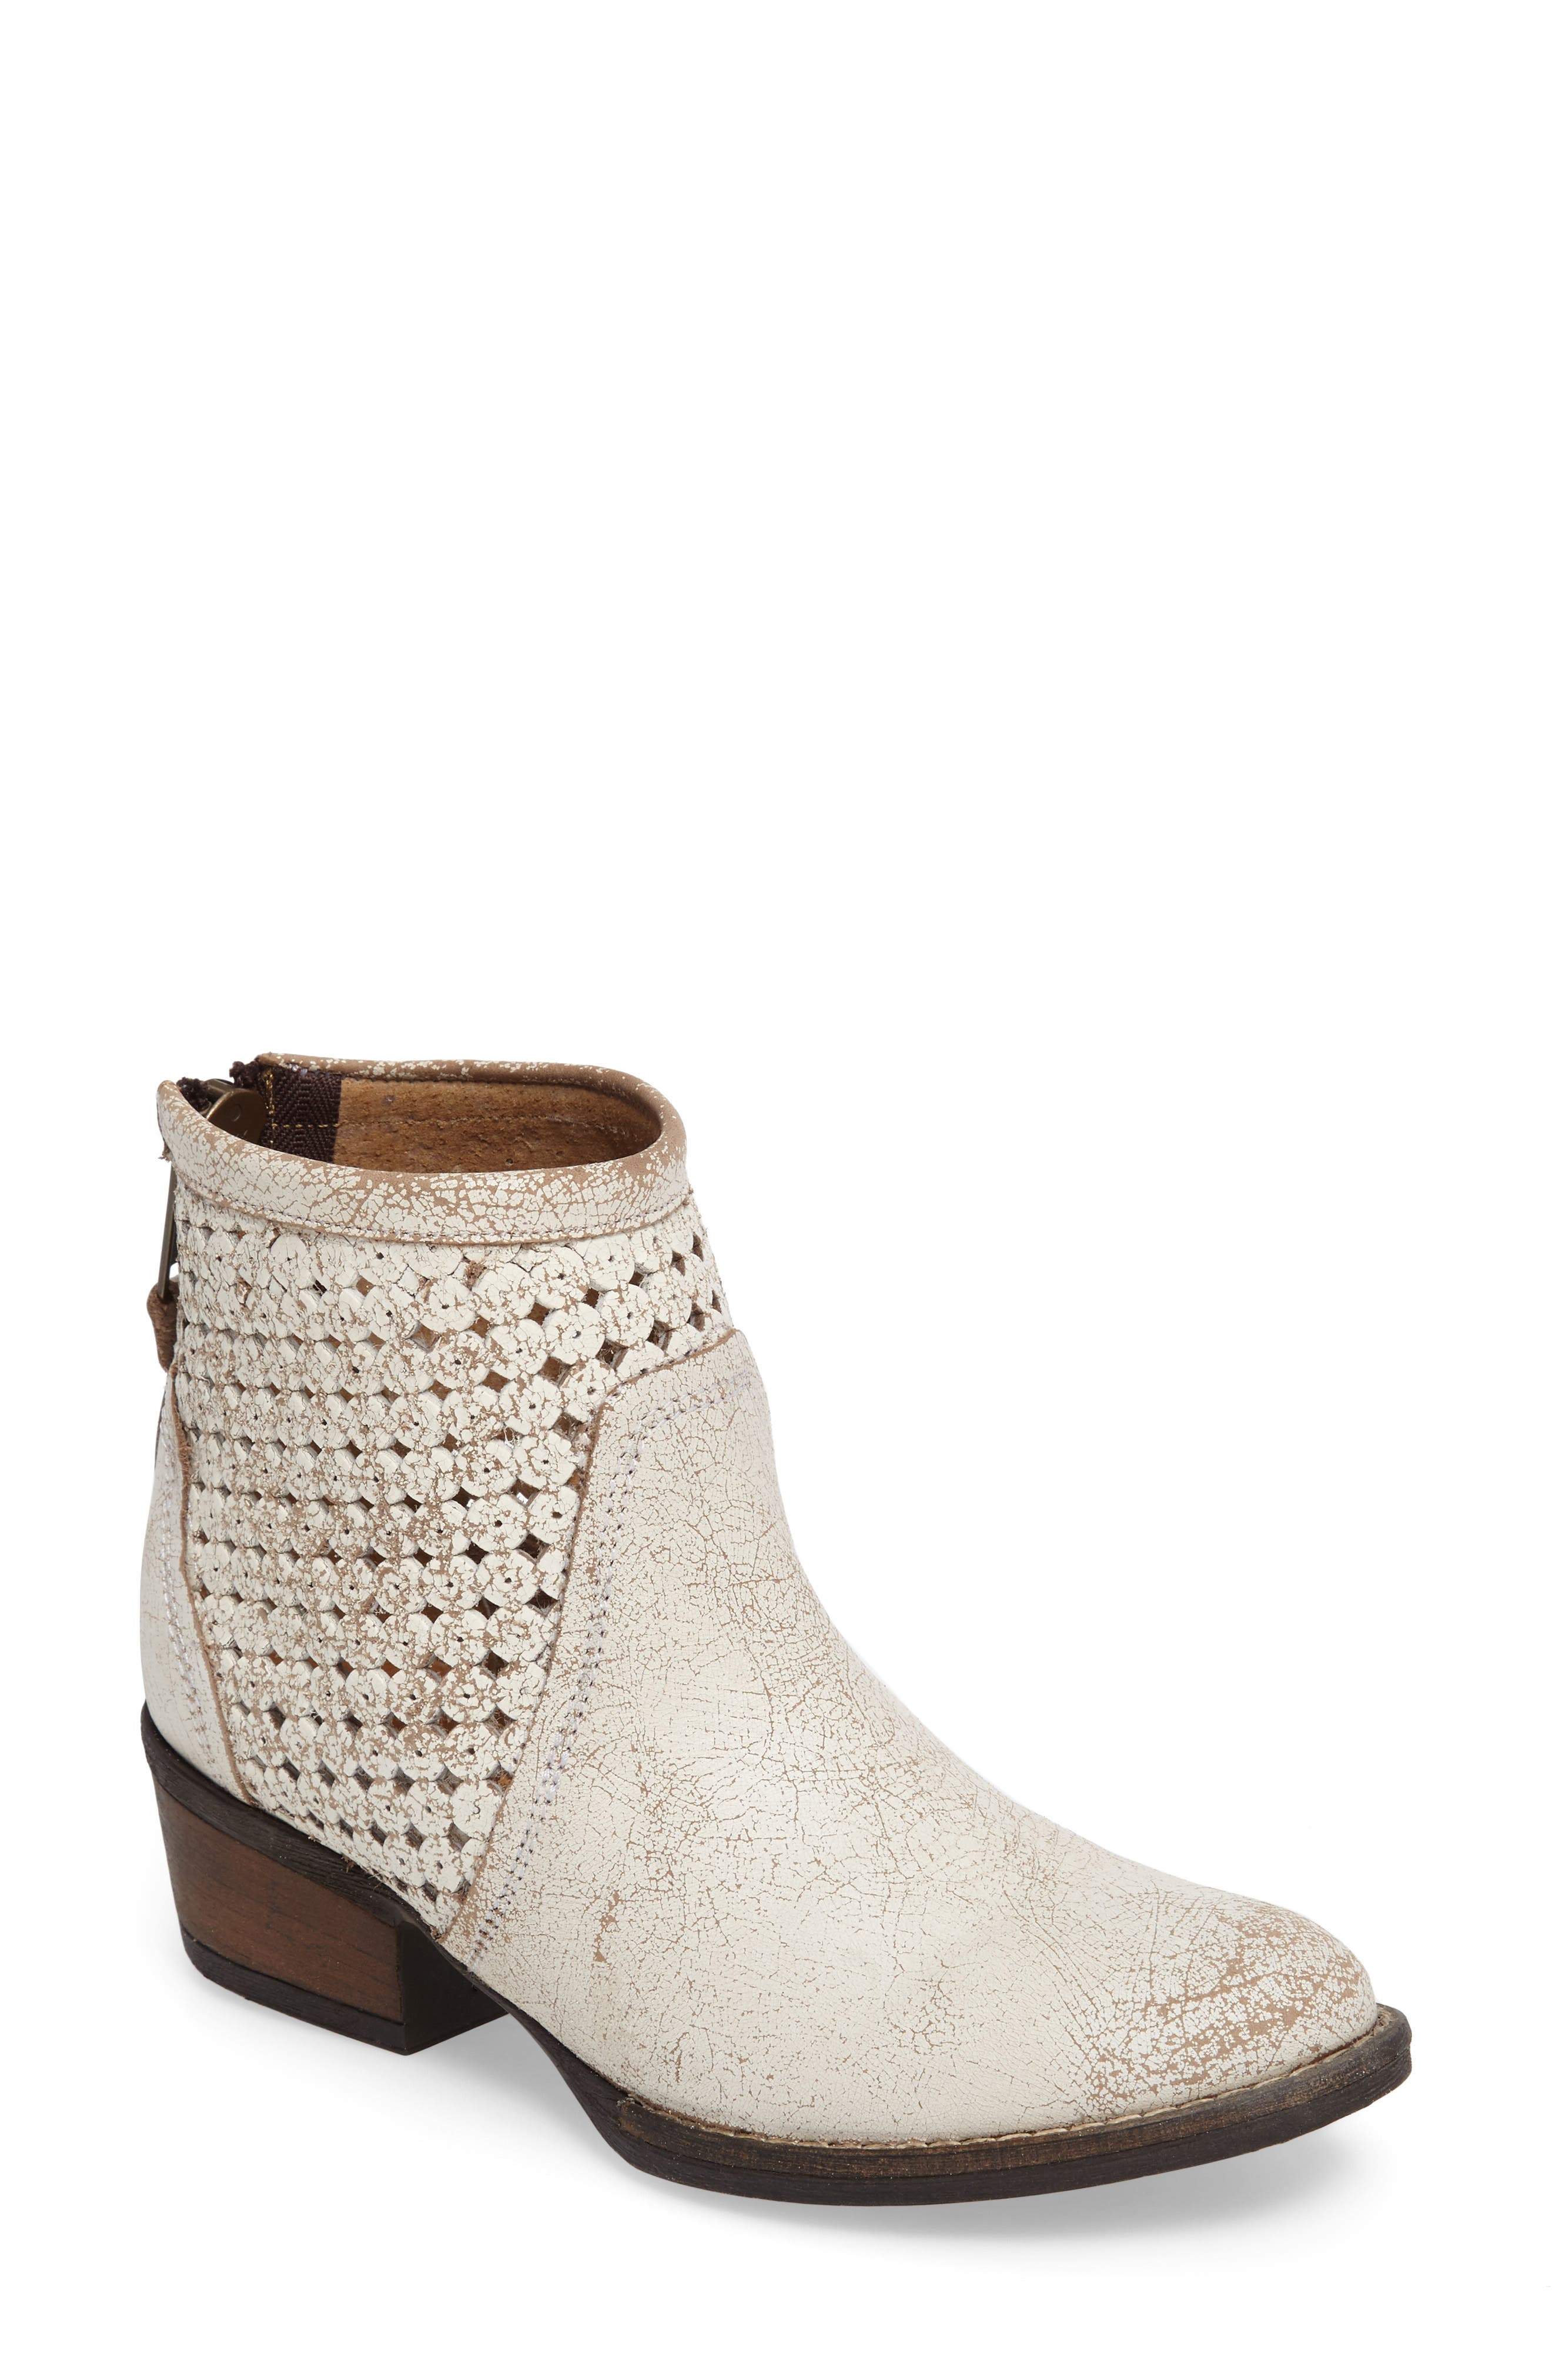 Namaste Bootie,                         Main,                         color, Off White Leather